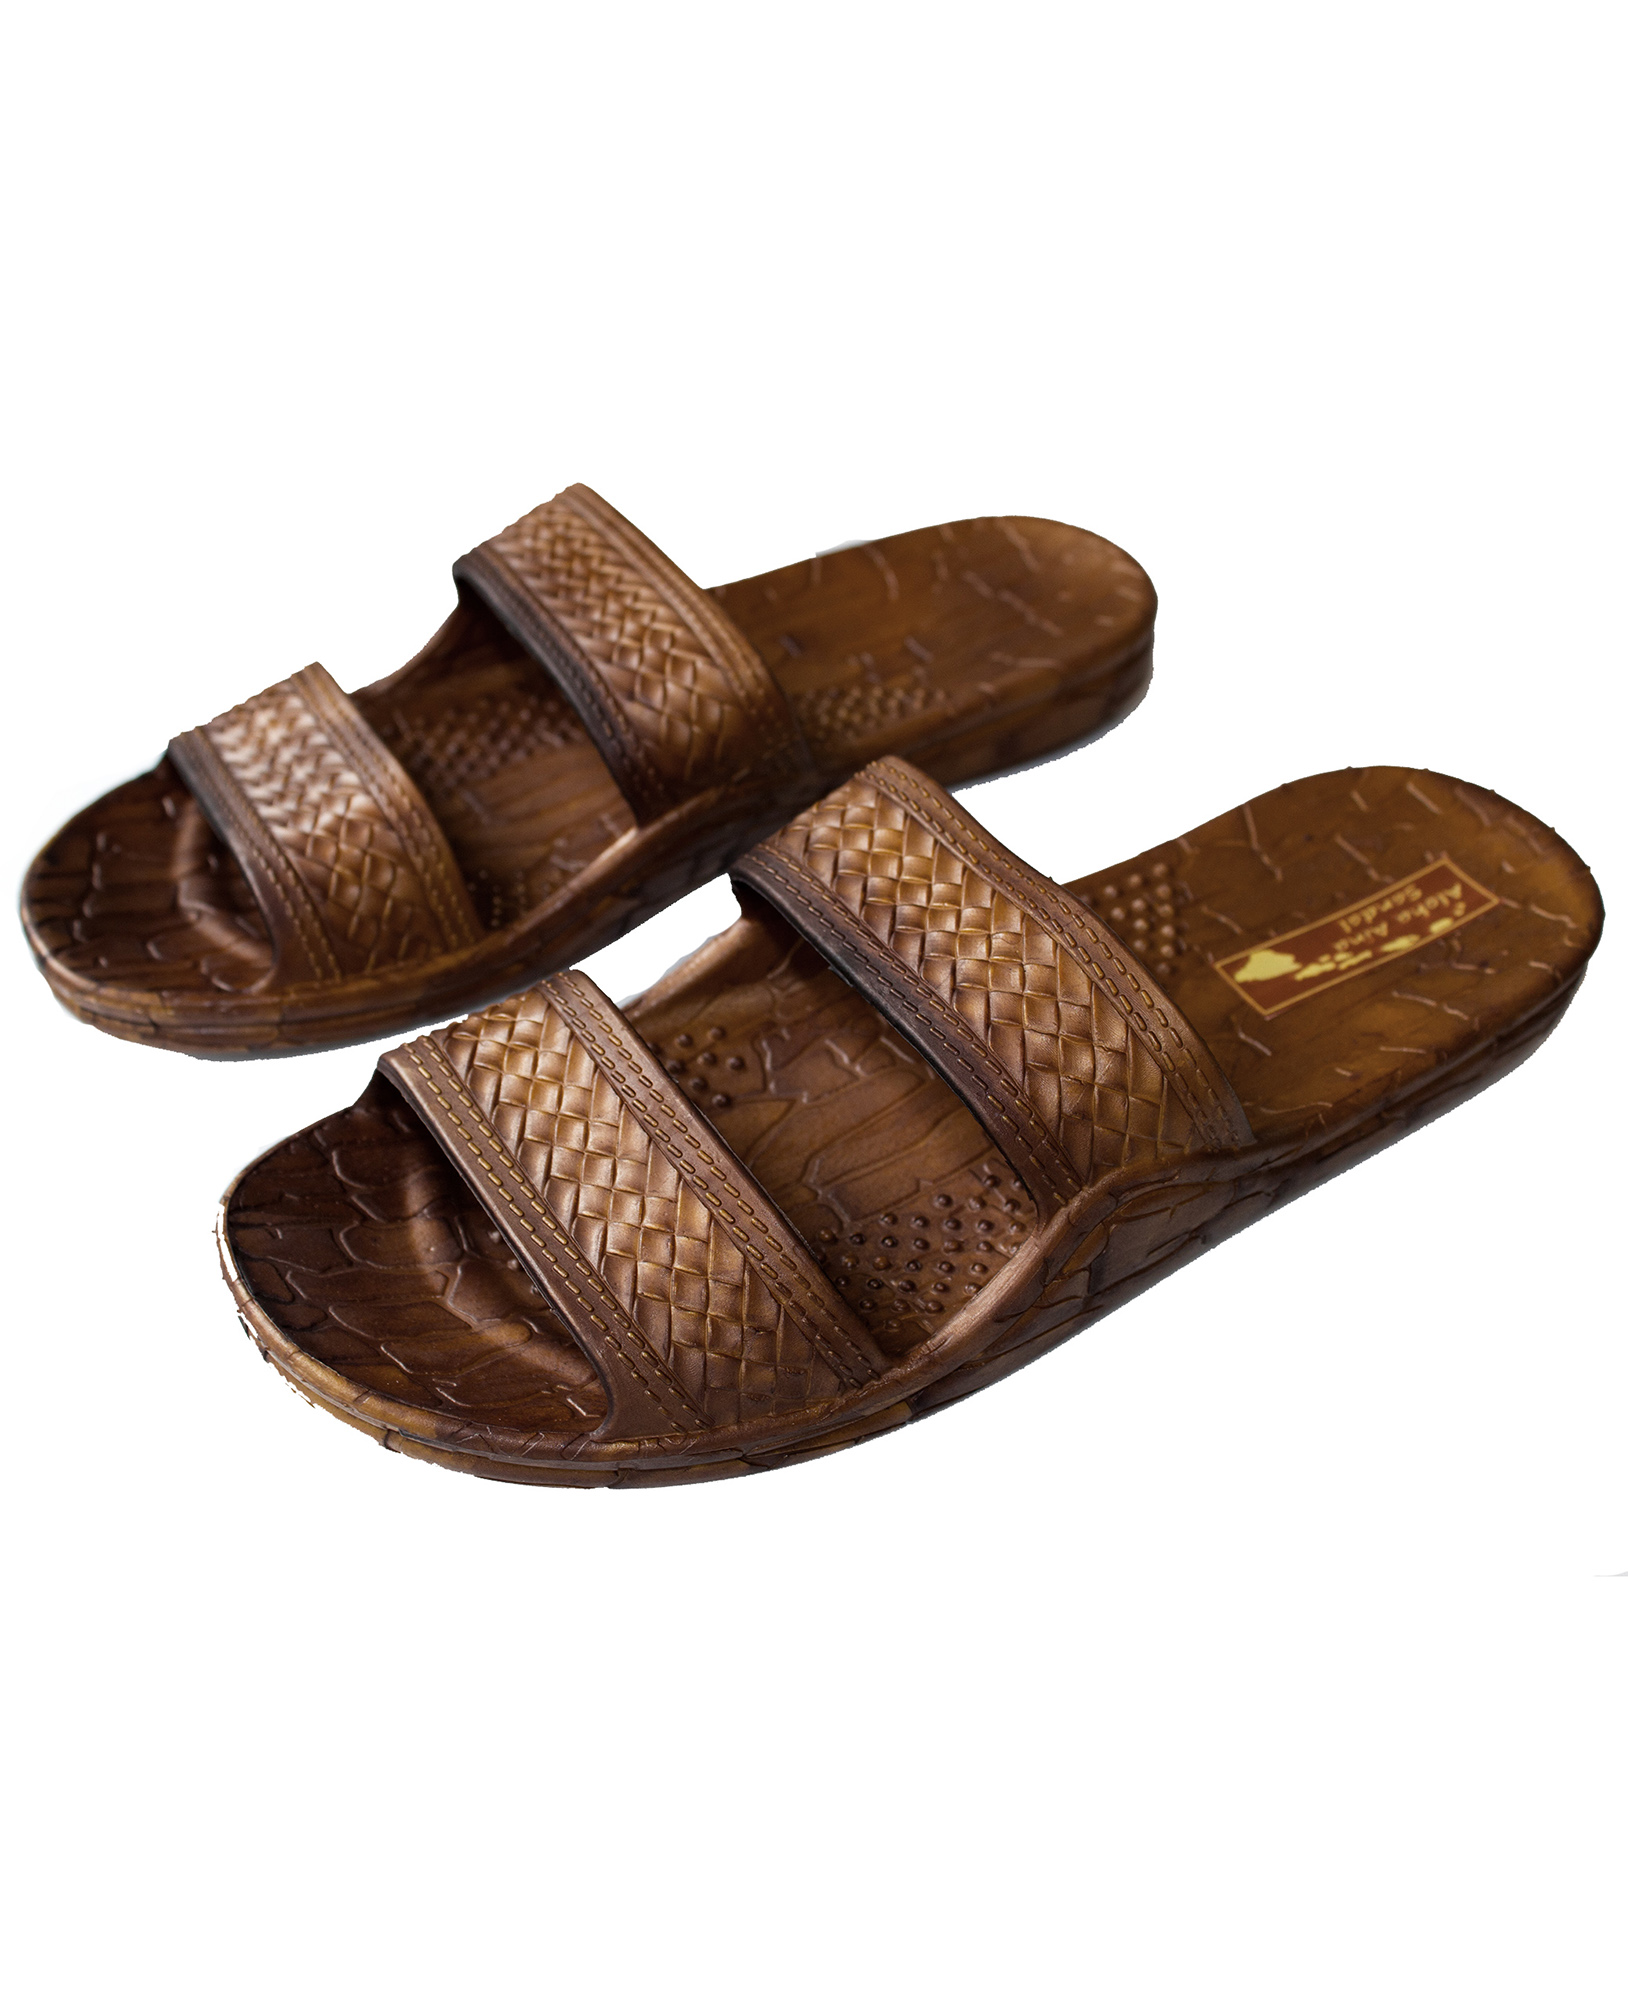 e1943458e Aloha Aina Sandal - Hawaii Brown and Black Jesus Sandals for Kids ...